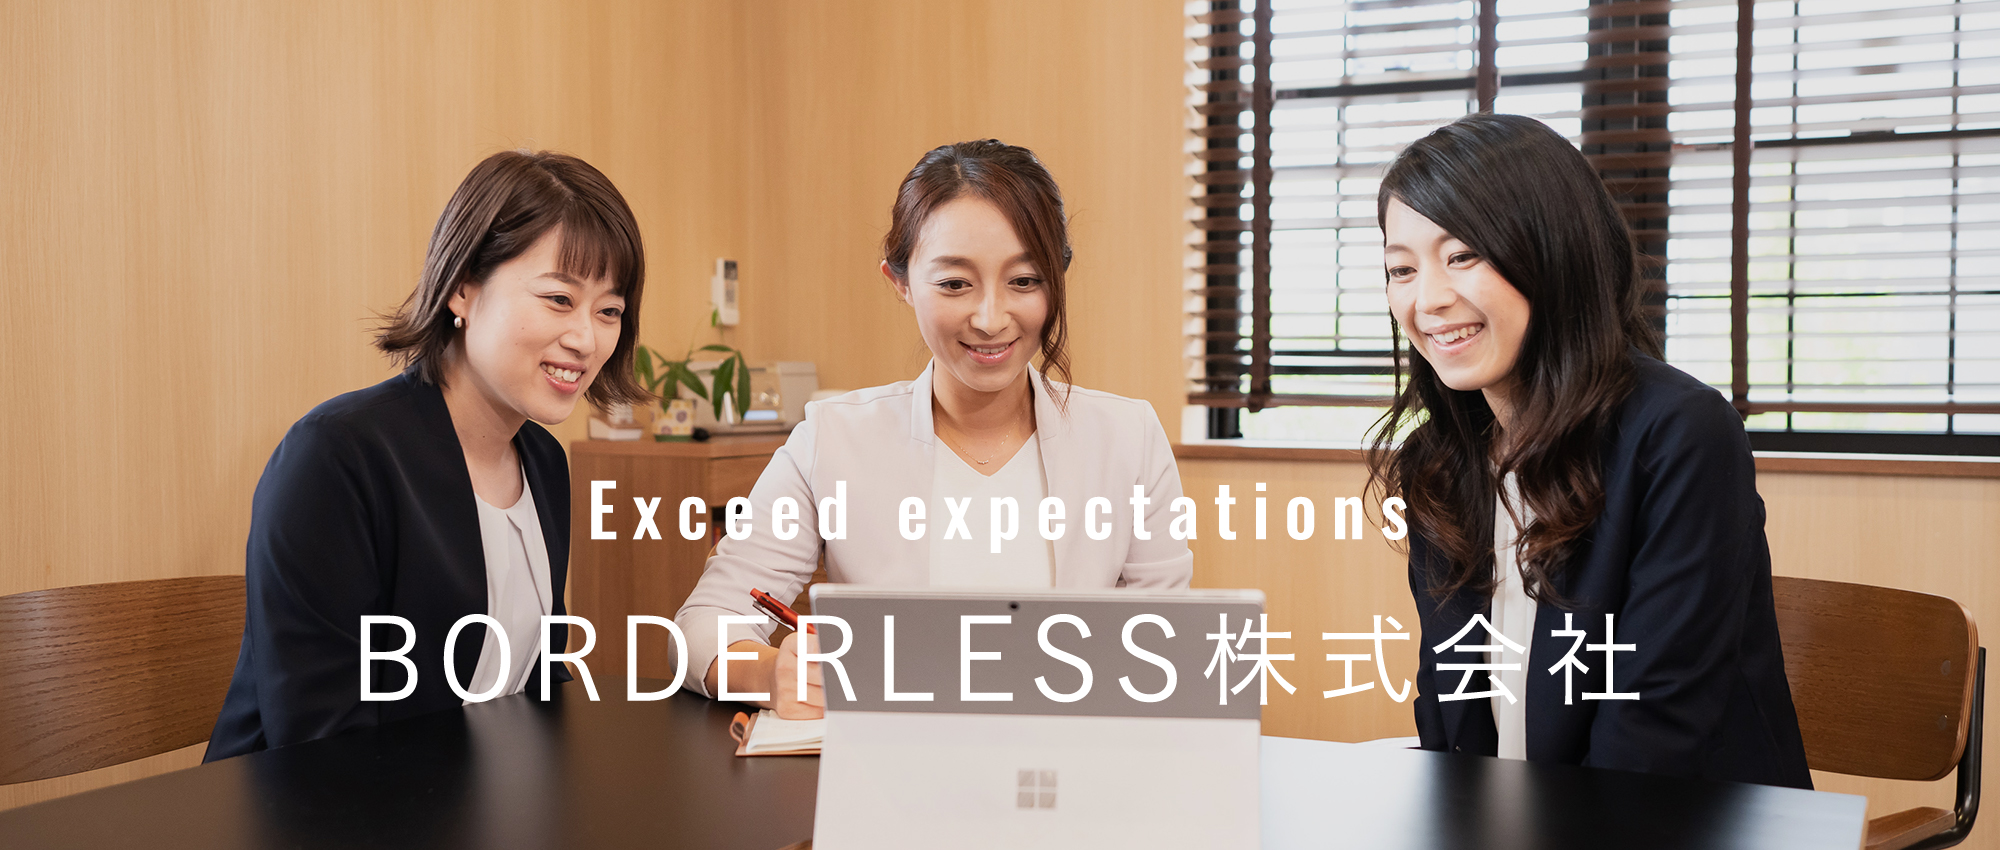 Exceed expectations BOARDERLESS株式会社